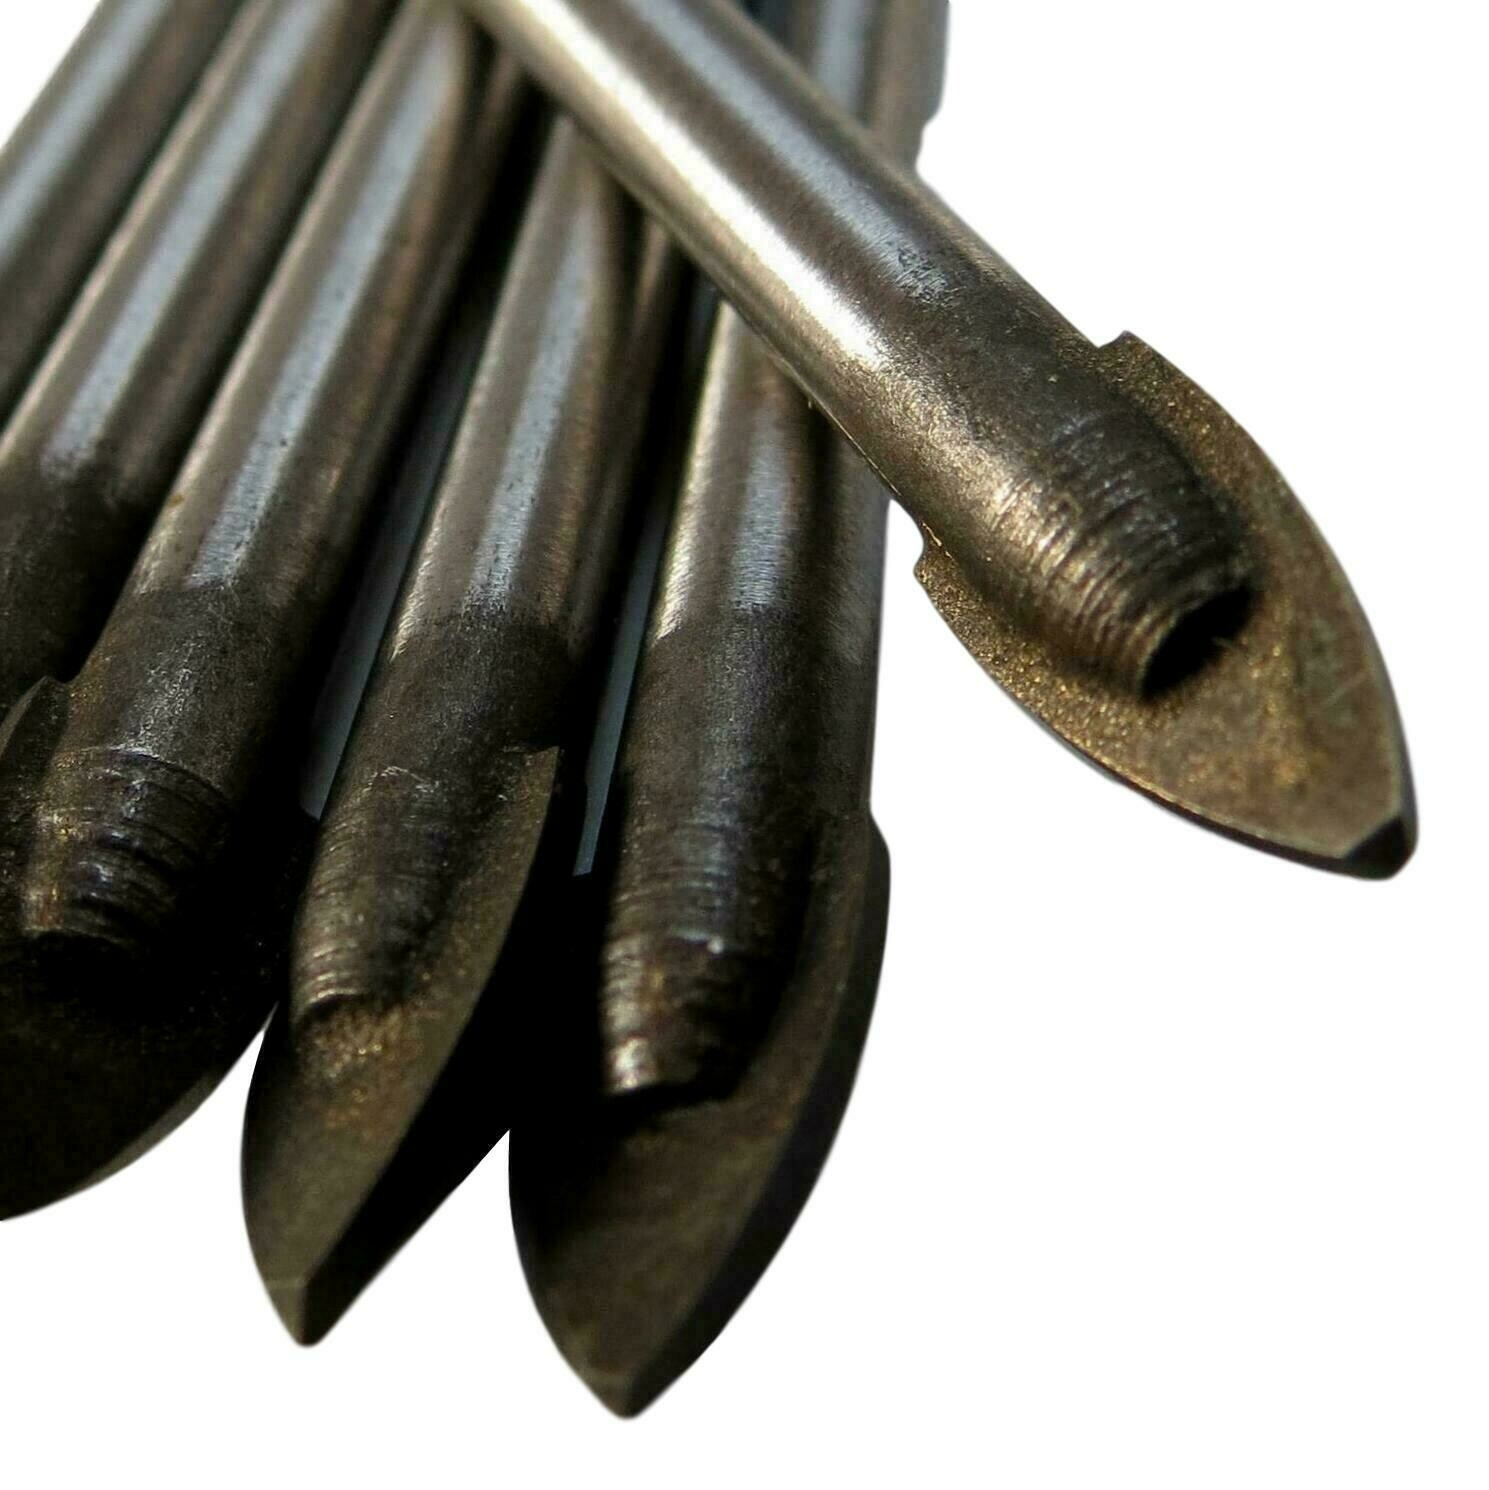 Carbide Spear Drill Bits